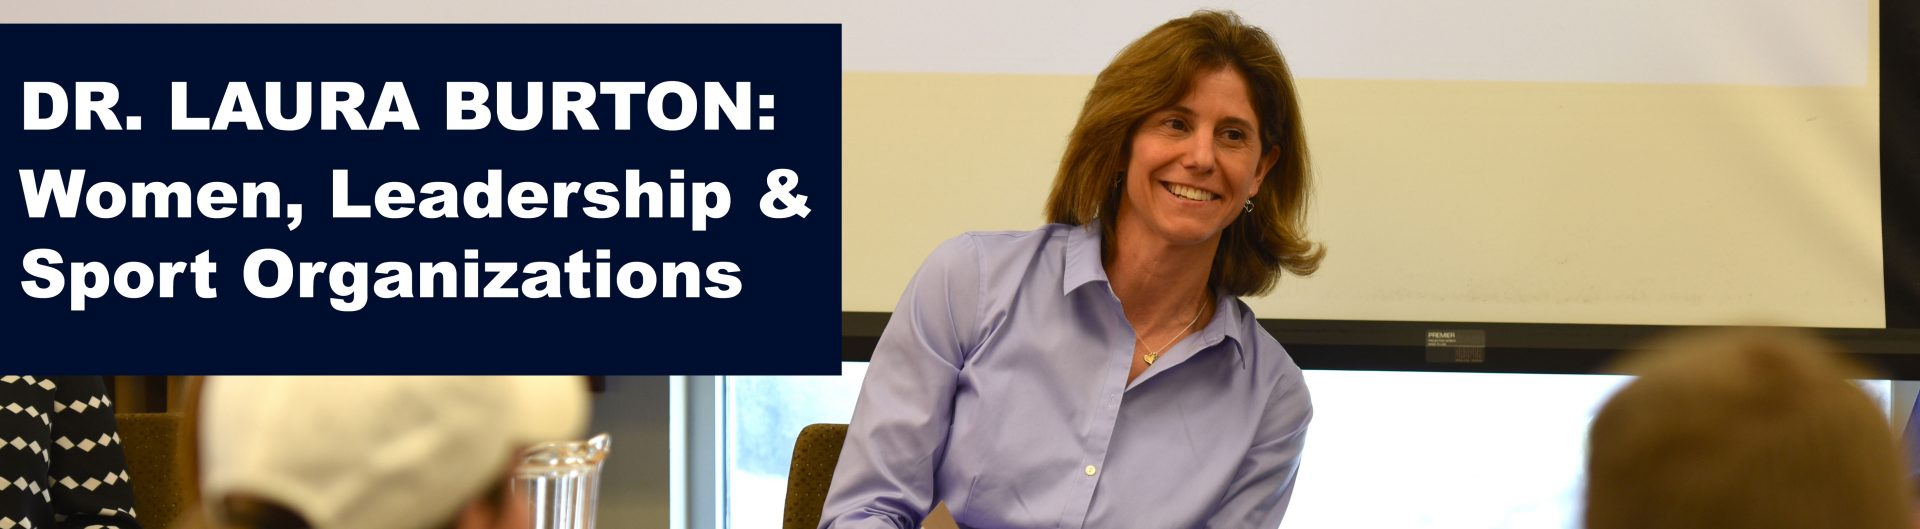 Dr. Laura Burton on Women in Sport Leadership Positions